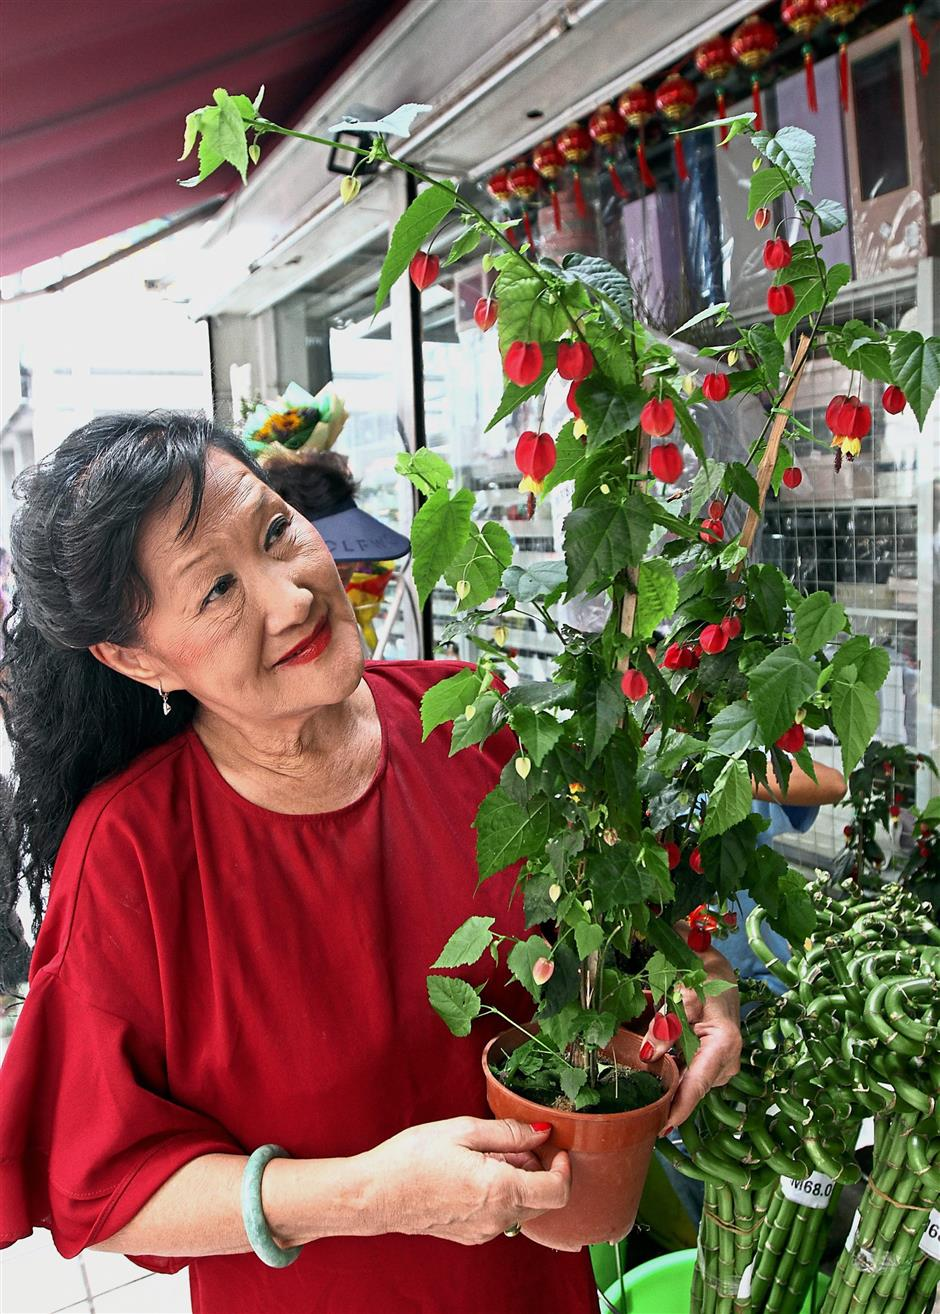 Chan showing the Lantern Blooms that is a new addition at her shop this year.